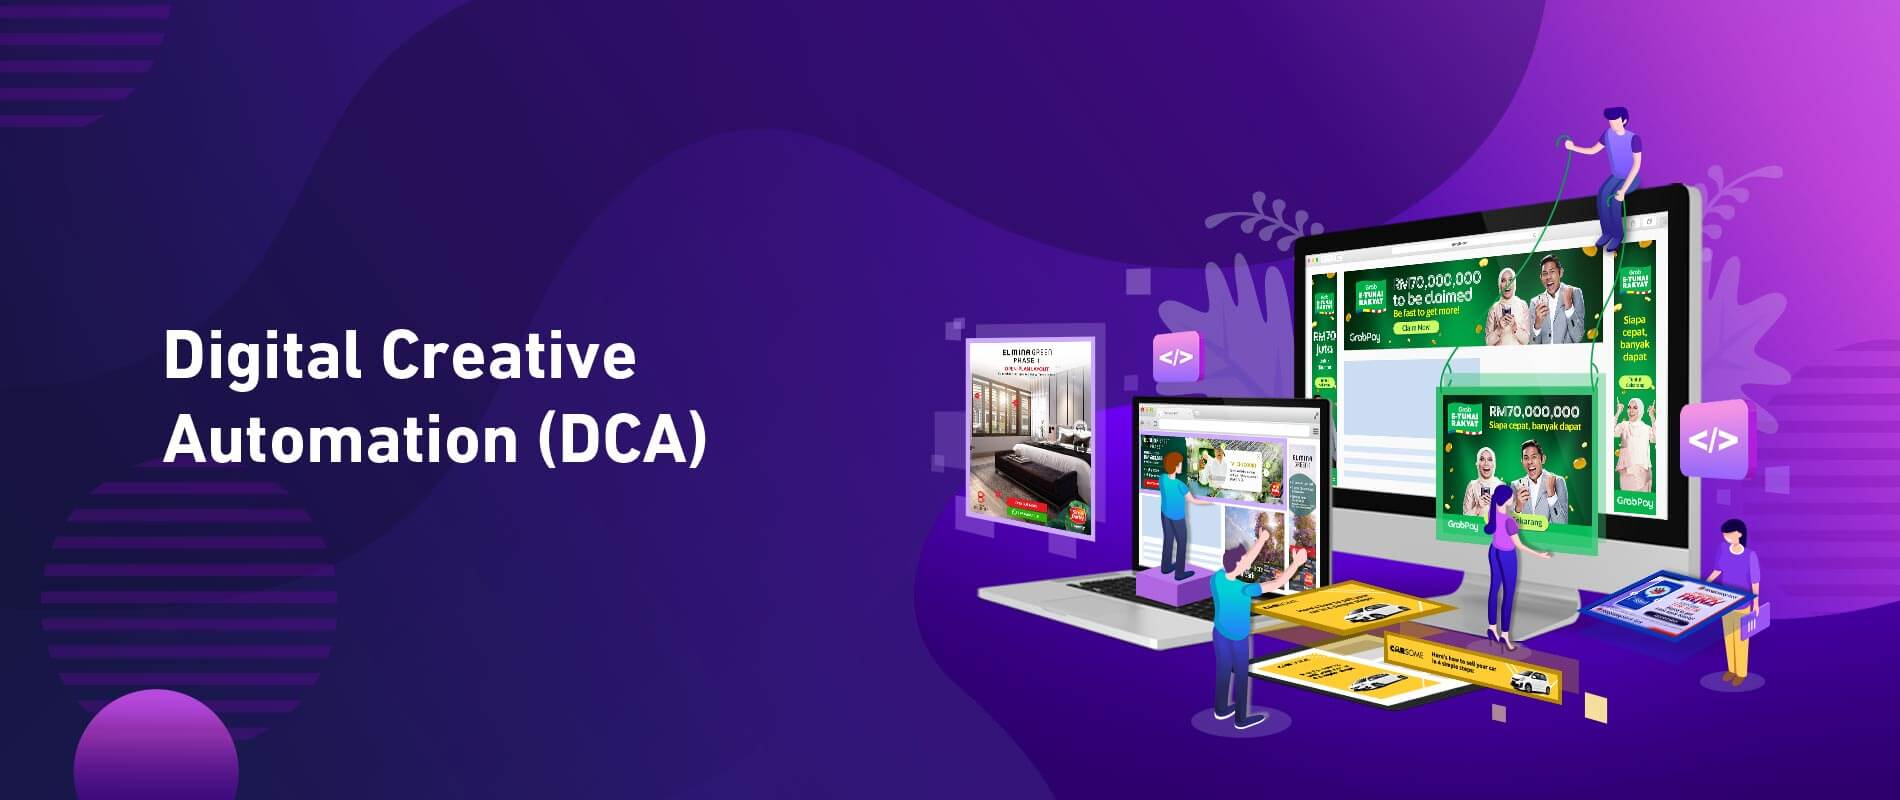 Digital Creative Automation (DCA)